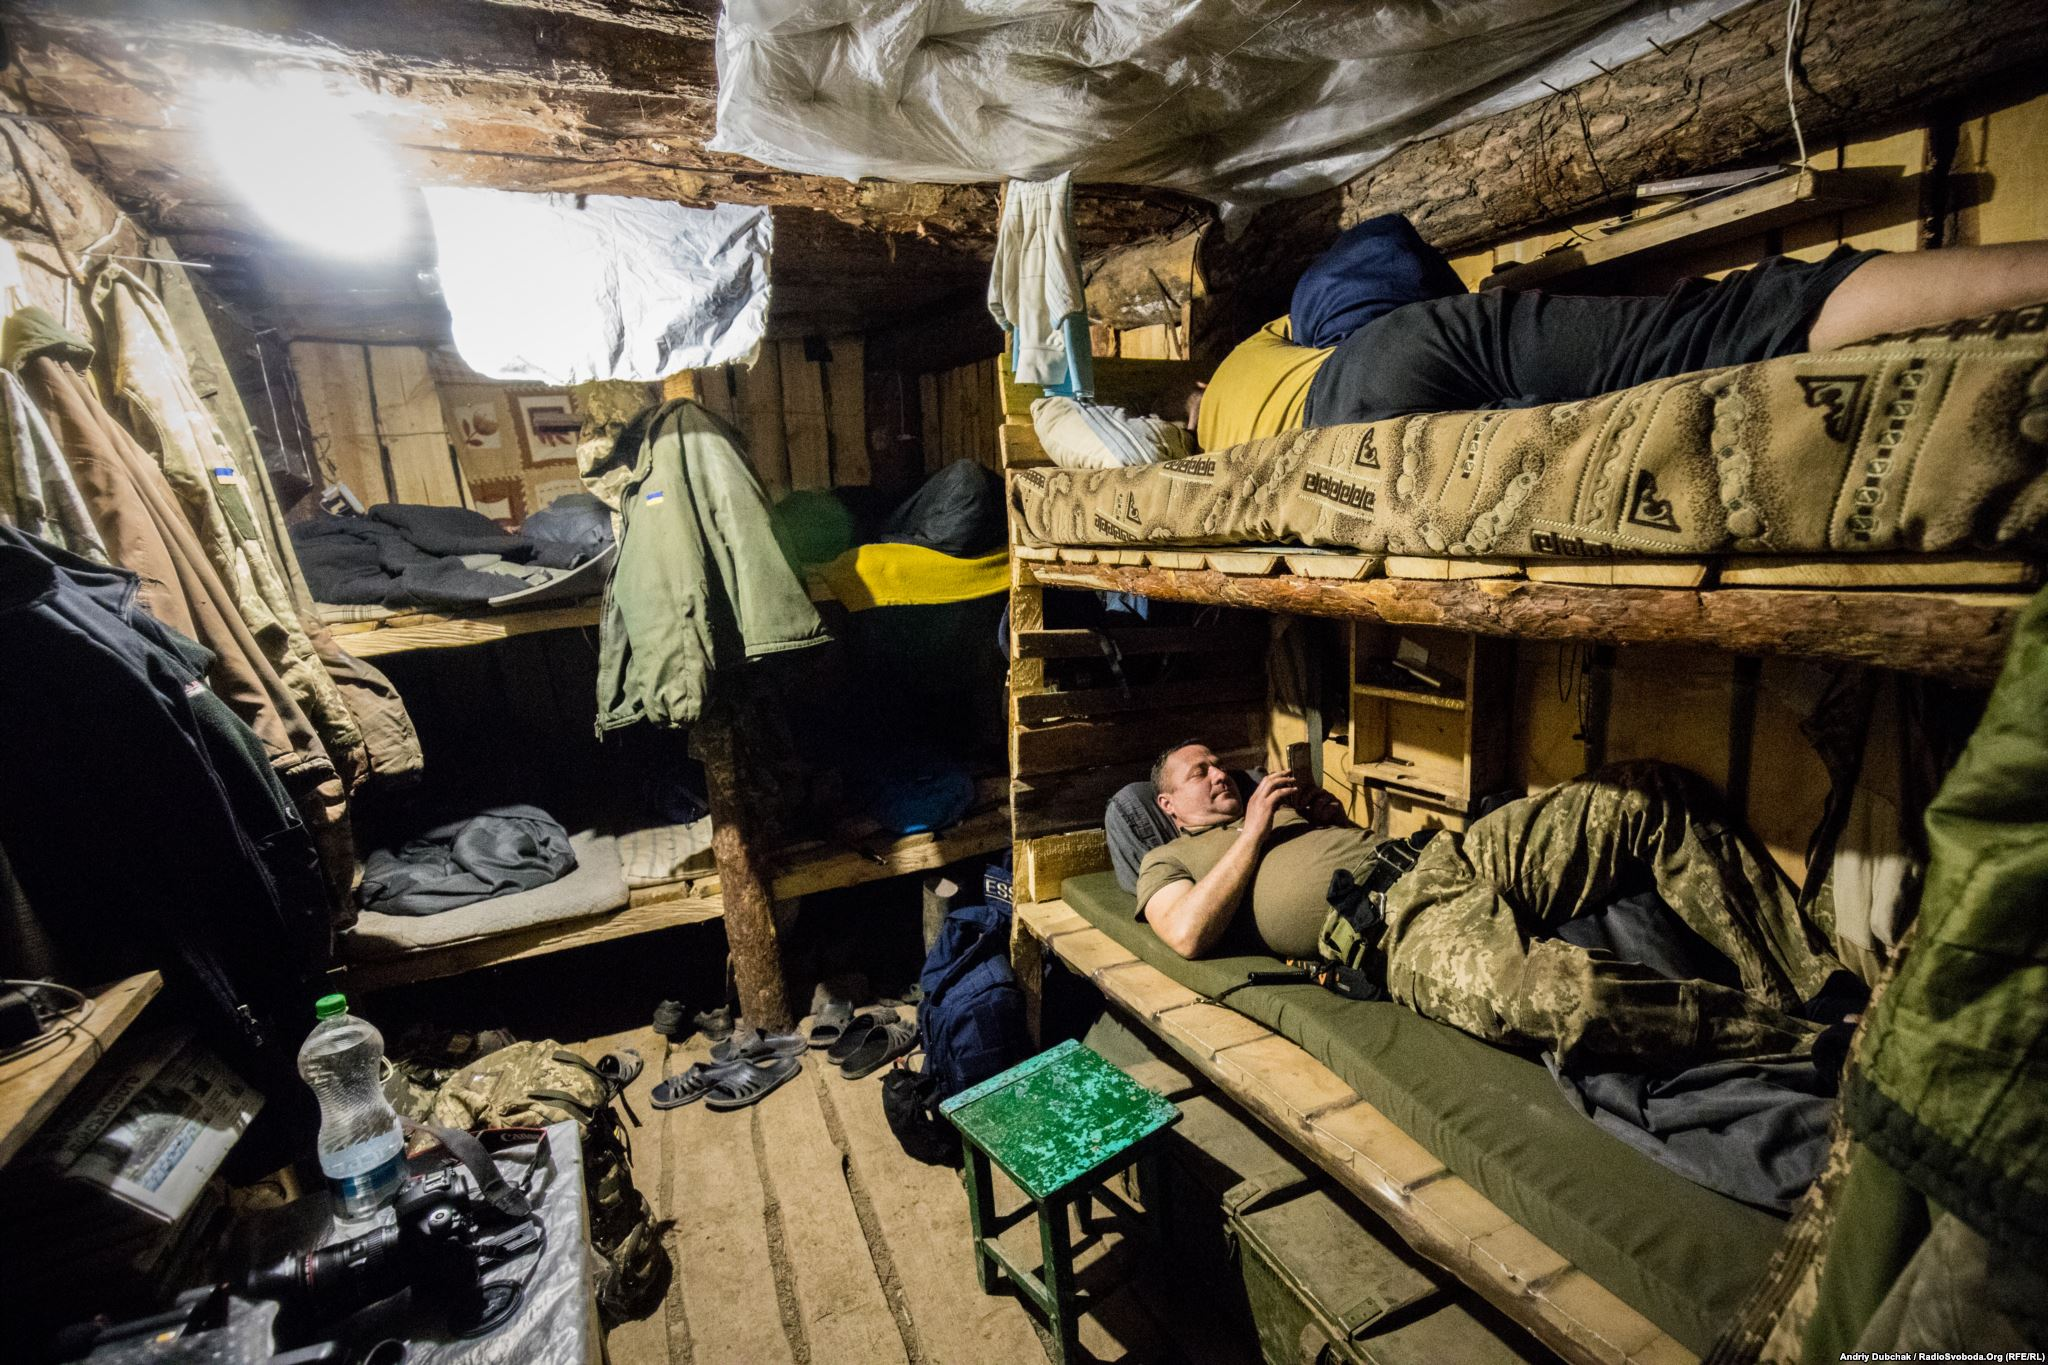 """Sleeping dugout"" housing 10 bed spaces. This is the place where soldiers rest between combat duties (photo by ukrainian military photographer Andriy Dubchak)"